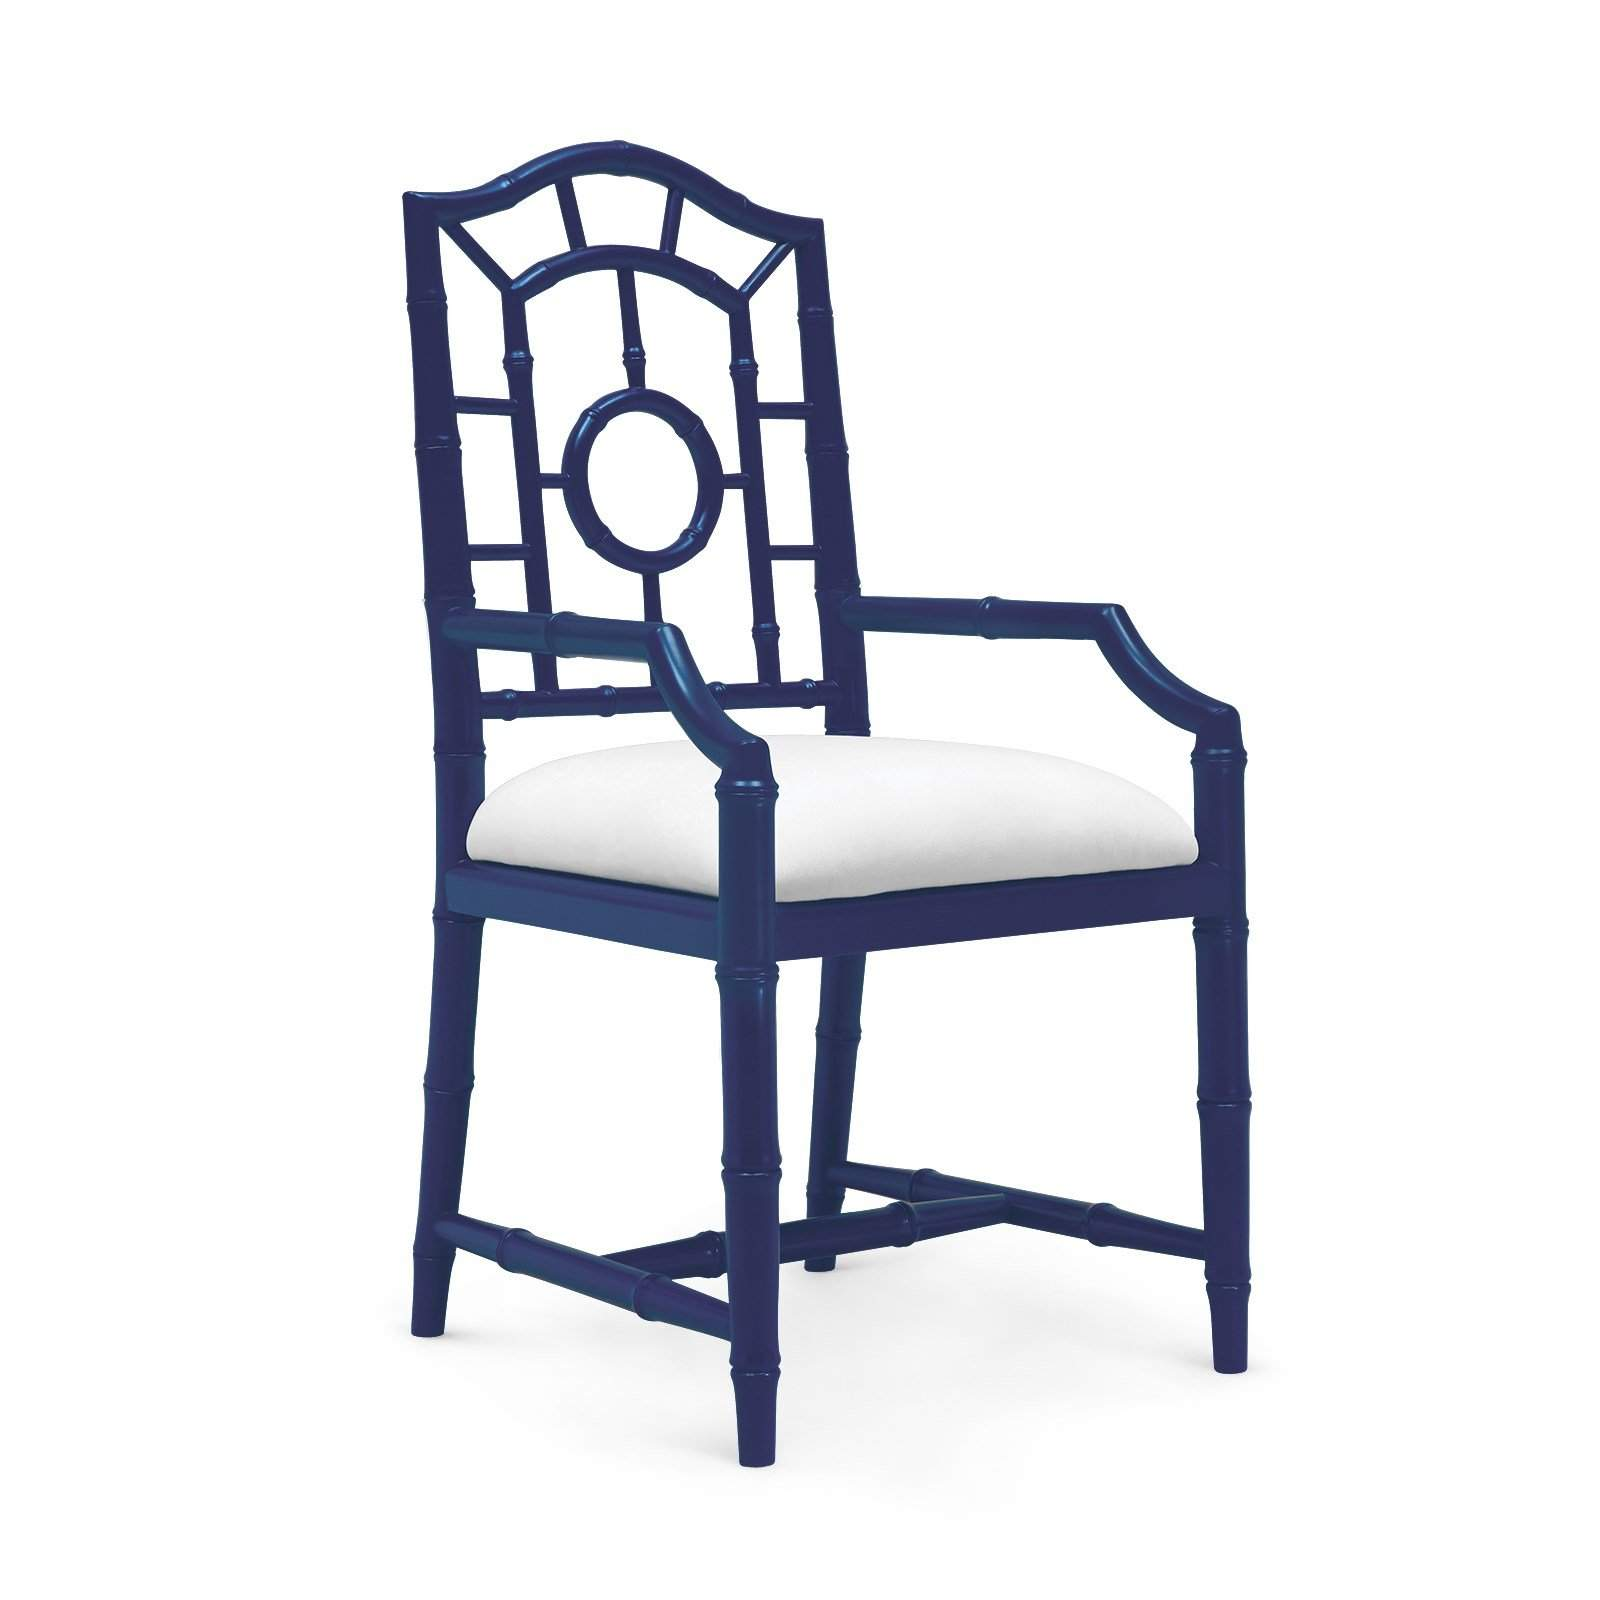 Bungalow 5 - CHLOE ARMCHAIR in NAVY BLUE